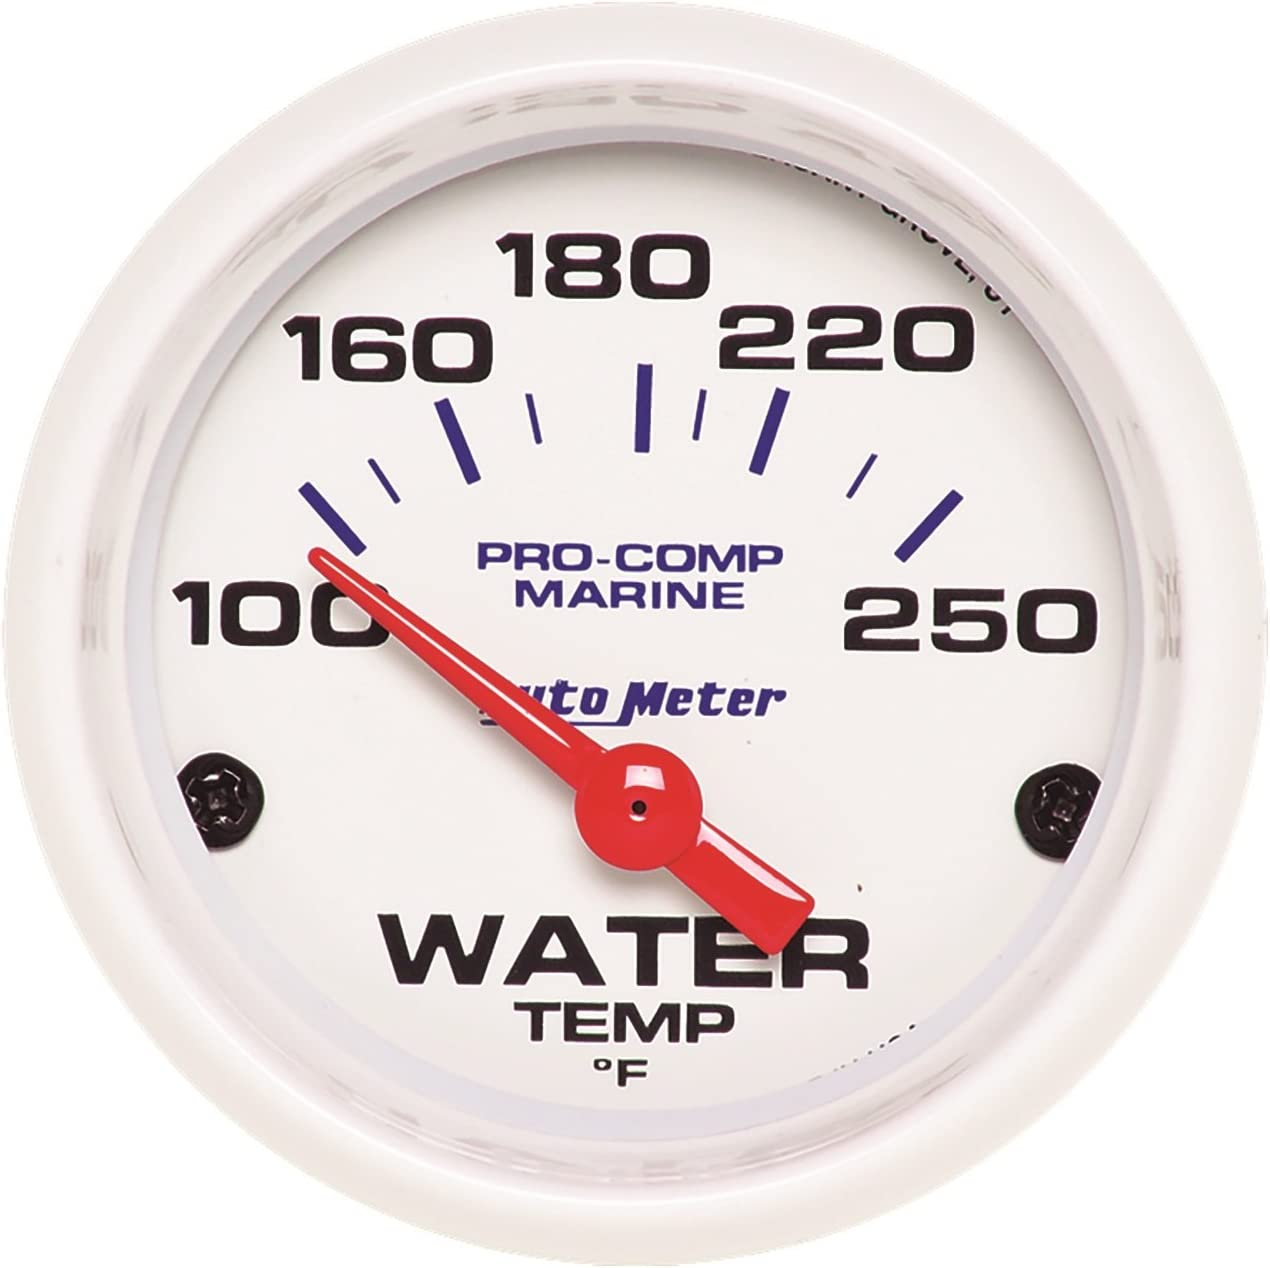 AUTO METER 200762 Gauge Water Max 57% OFF Temp Marine White NEW before selling 1 16